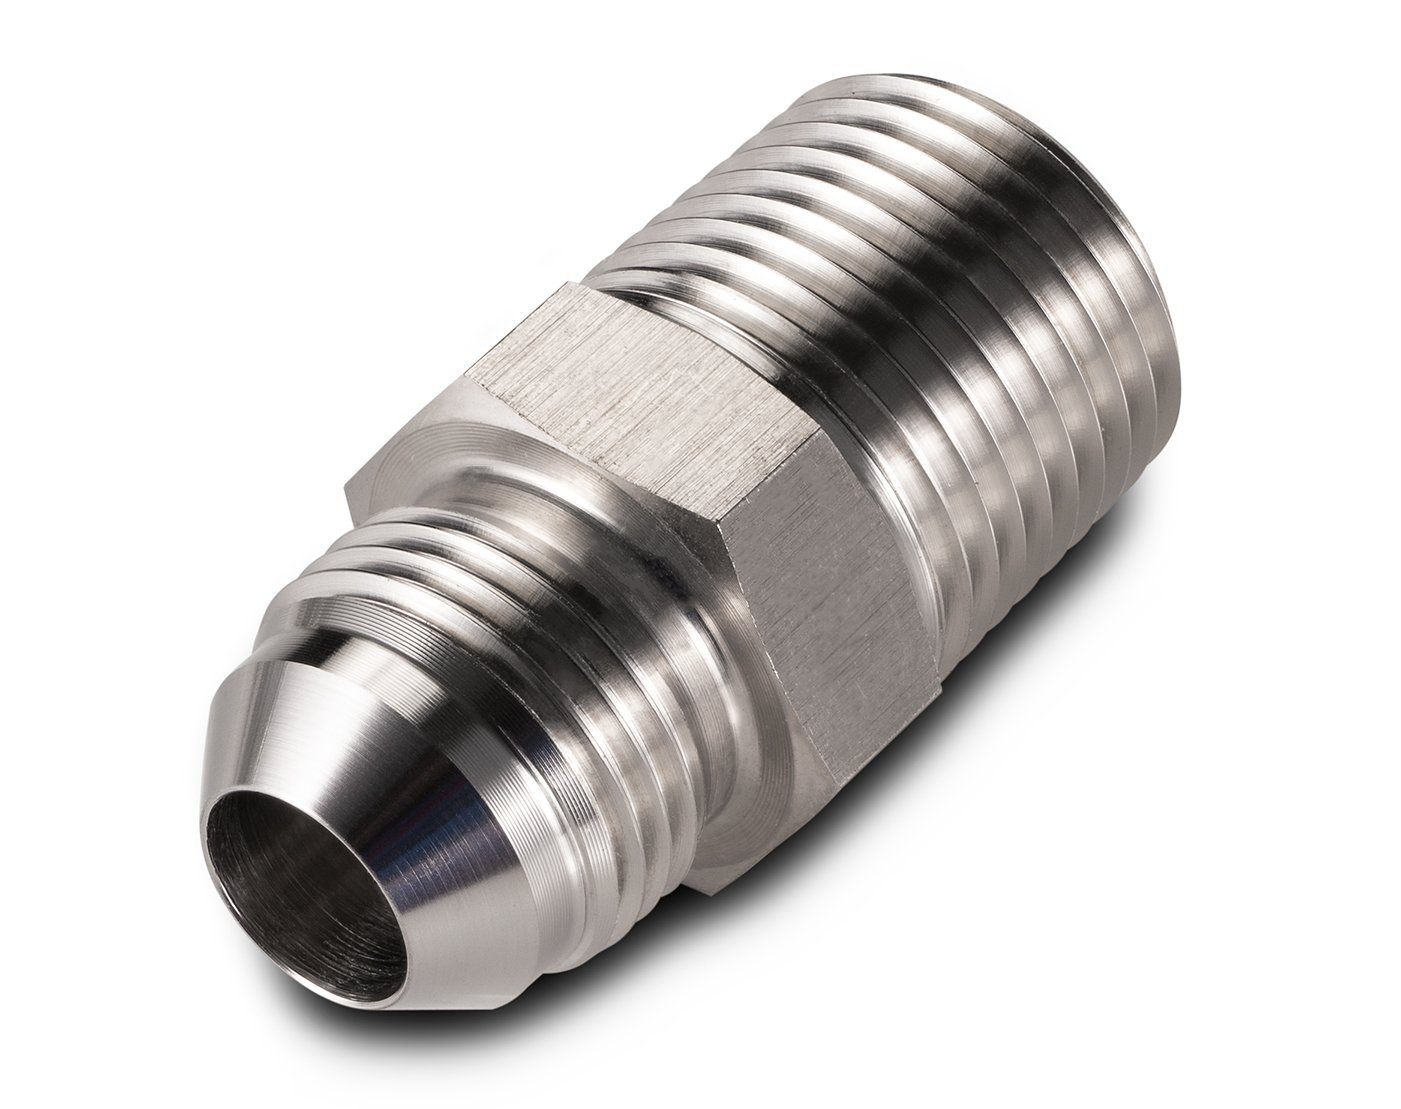 BVV 37° MJIC X MNPT Shop All Categories BVV 1/2-inch X 3/8-inch MNPT